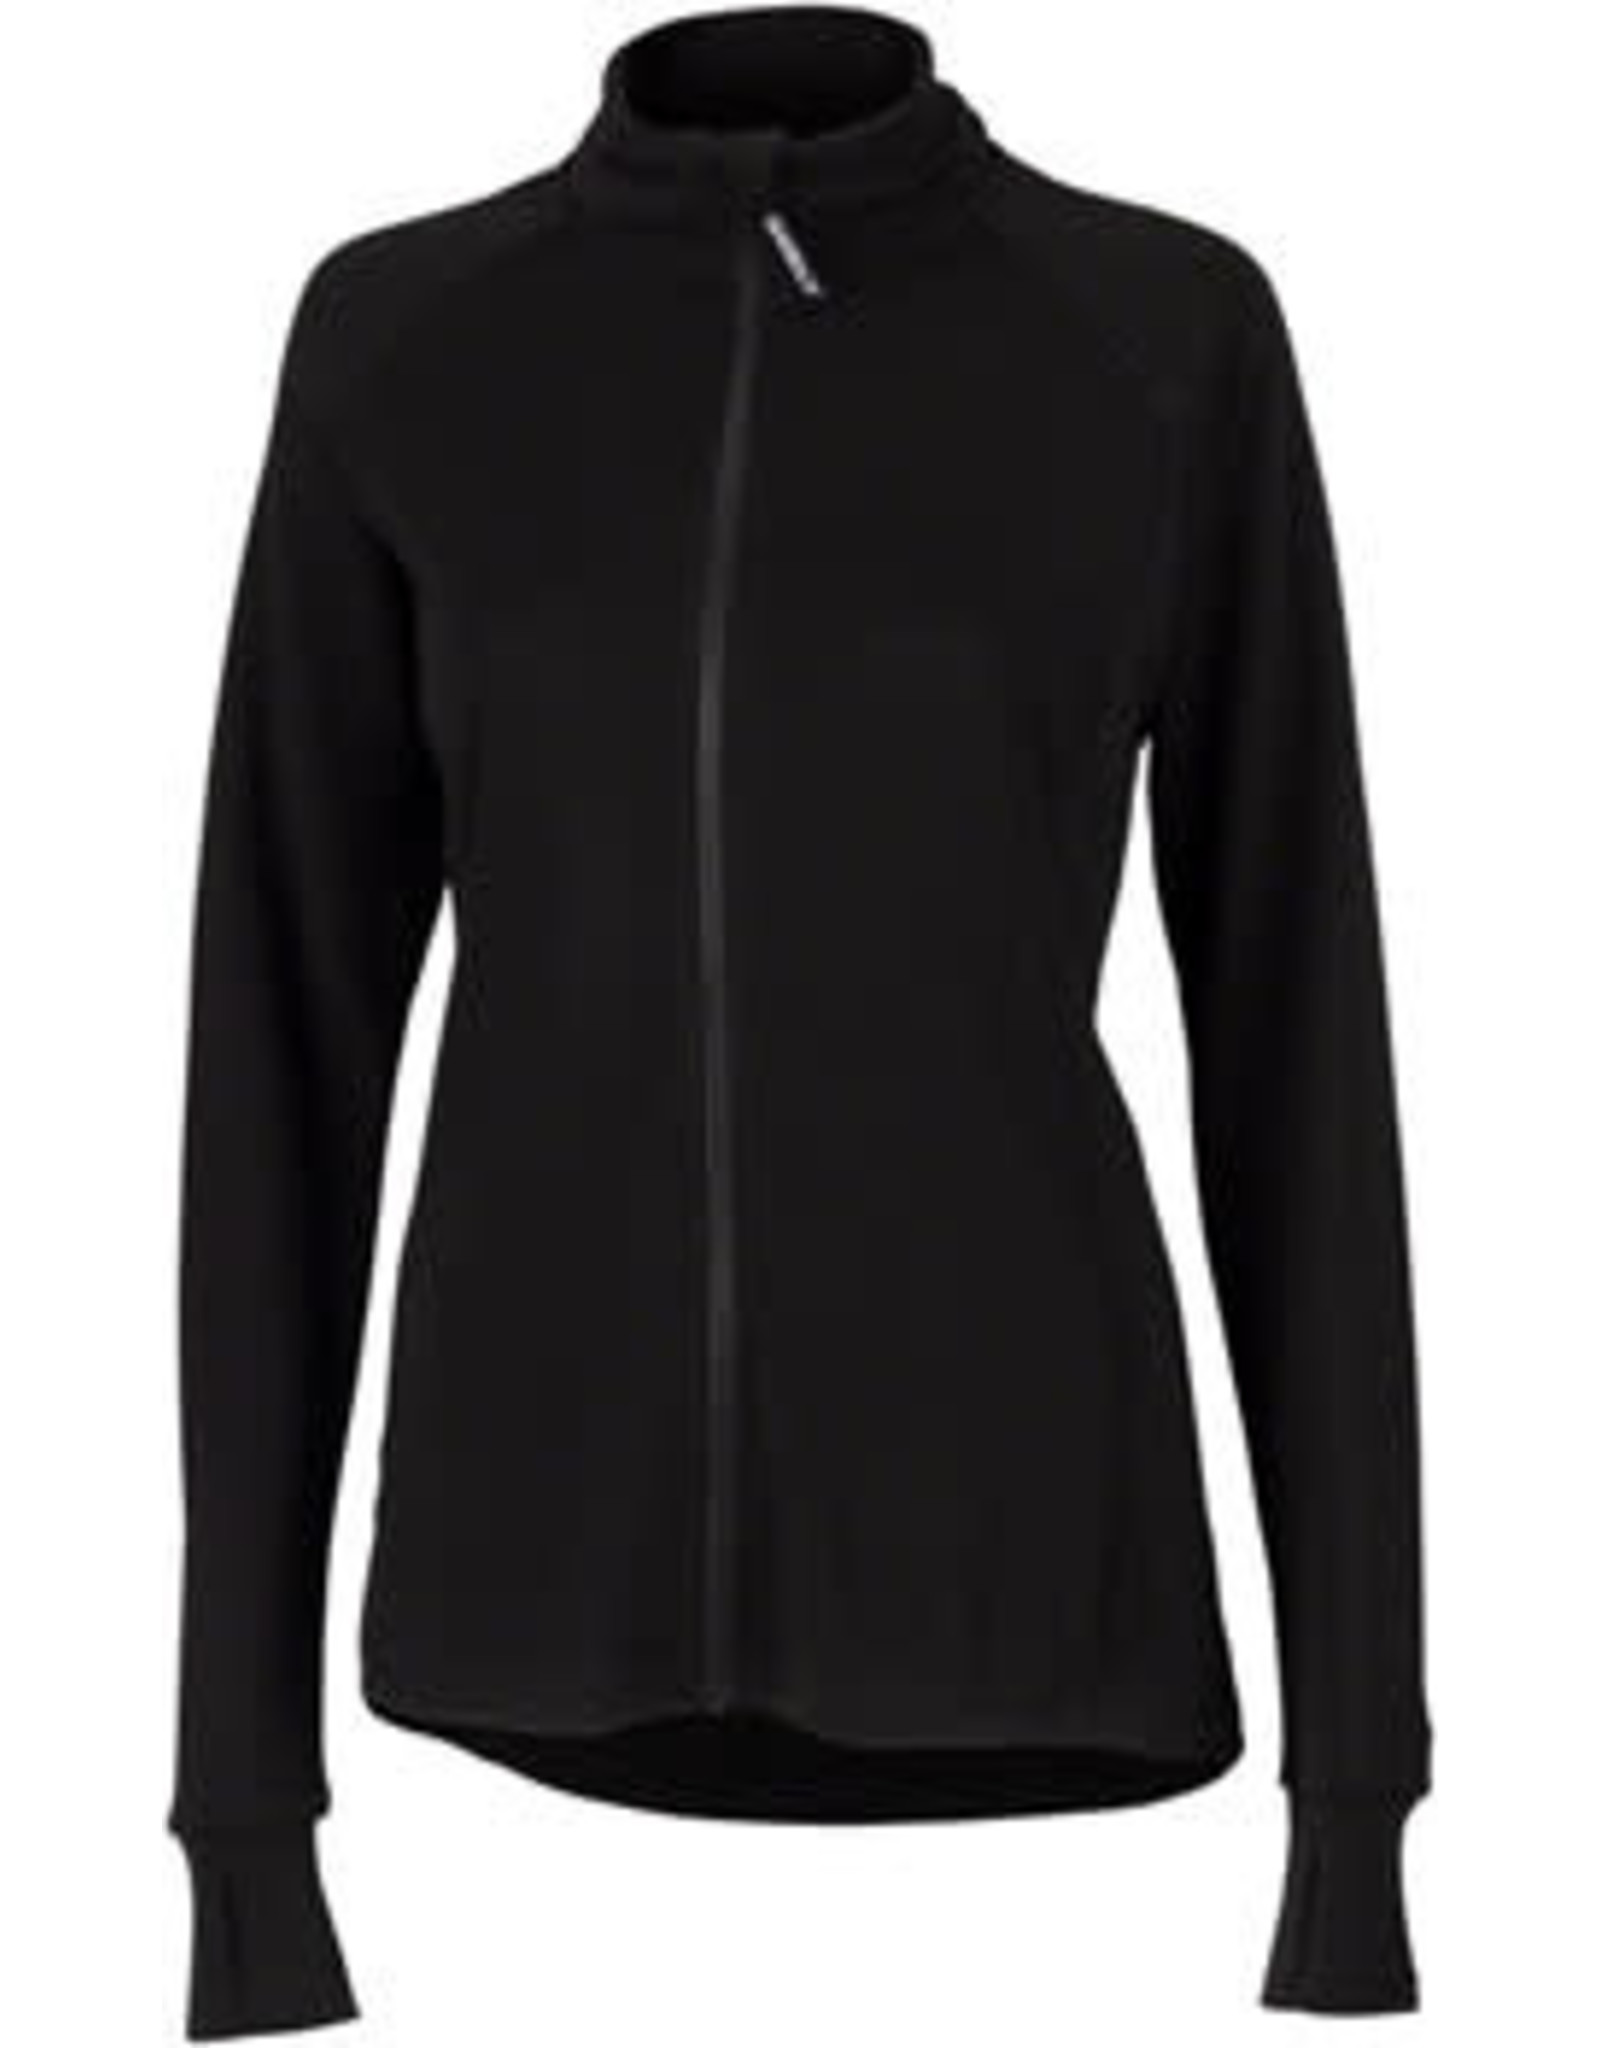 Surly Surly Merino Wool Women's Long Sleeve Jersey: Black MD